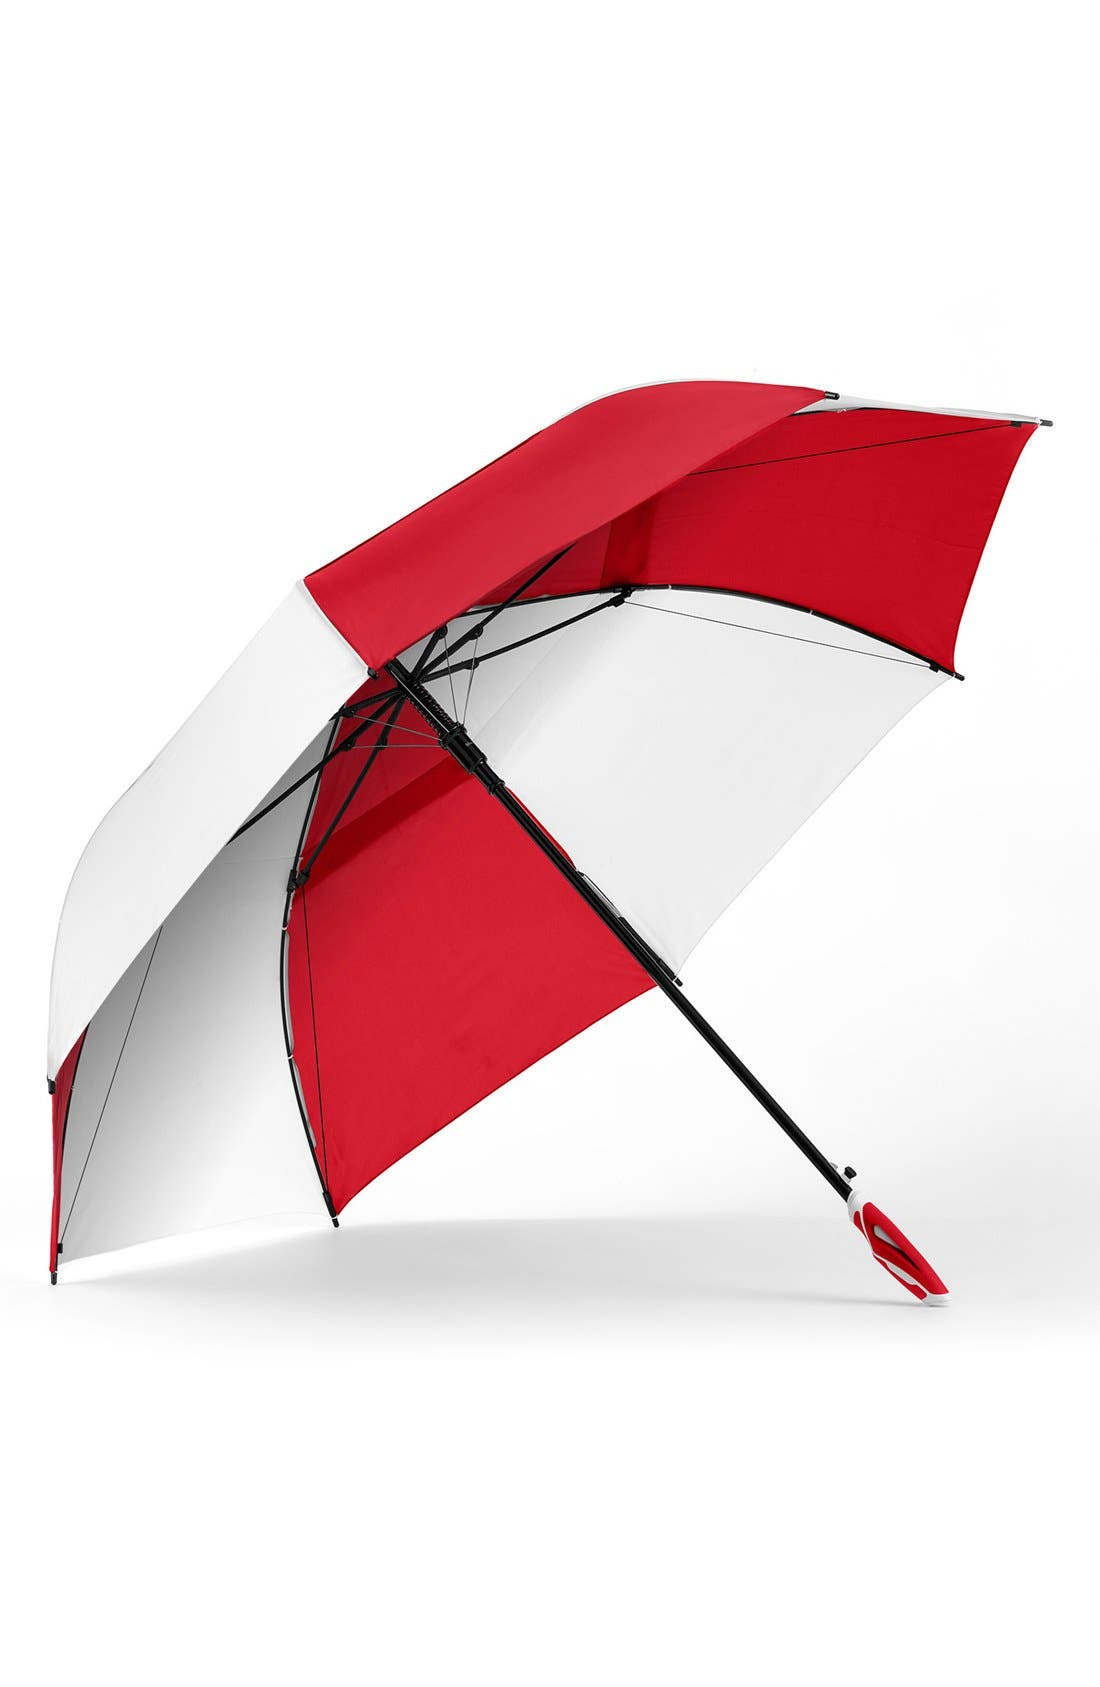 ShedRain 'WindJammer®' Auto Open Golf Umbrella